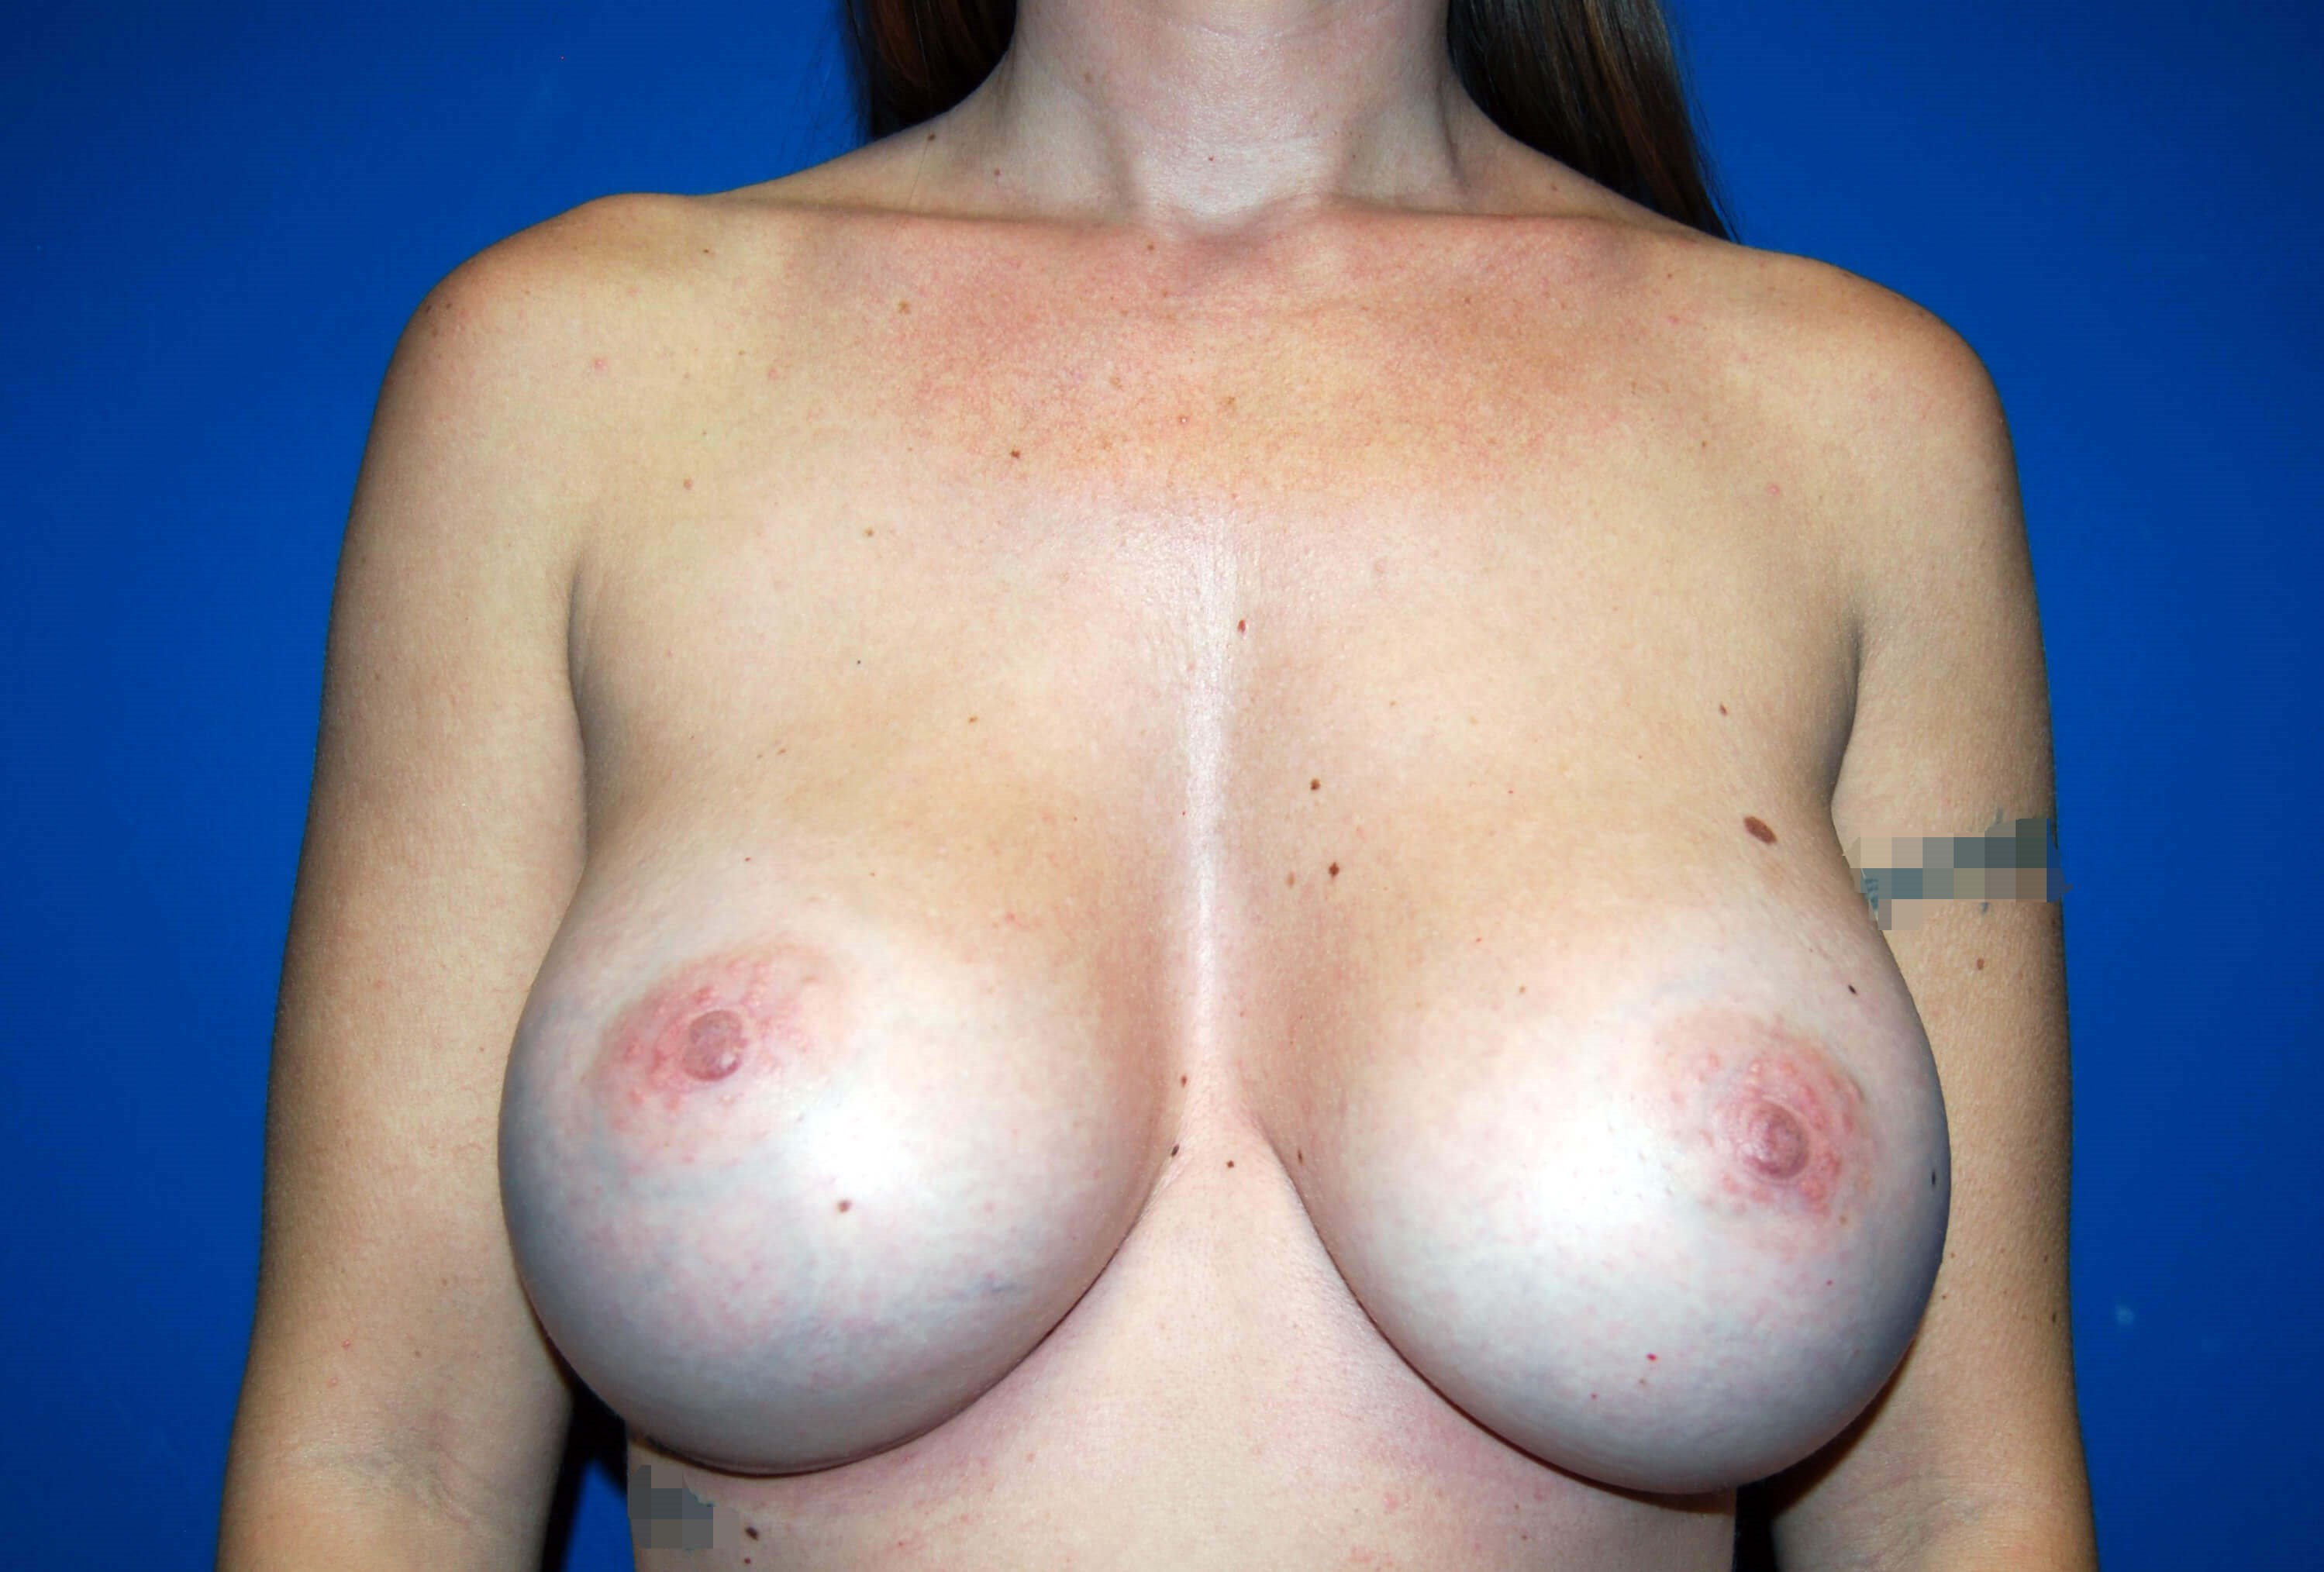 Front View After 500cc Implants